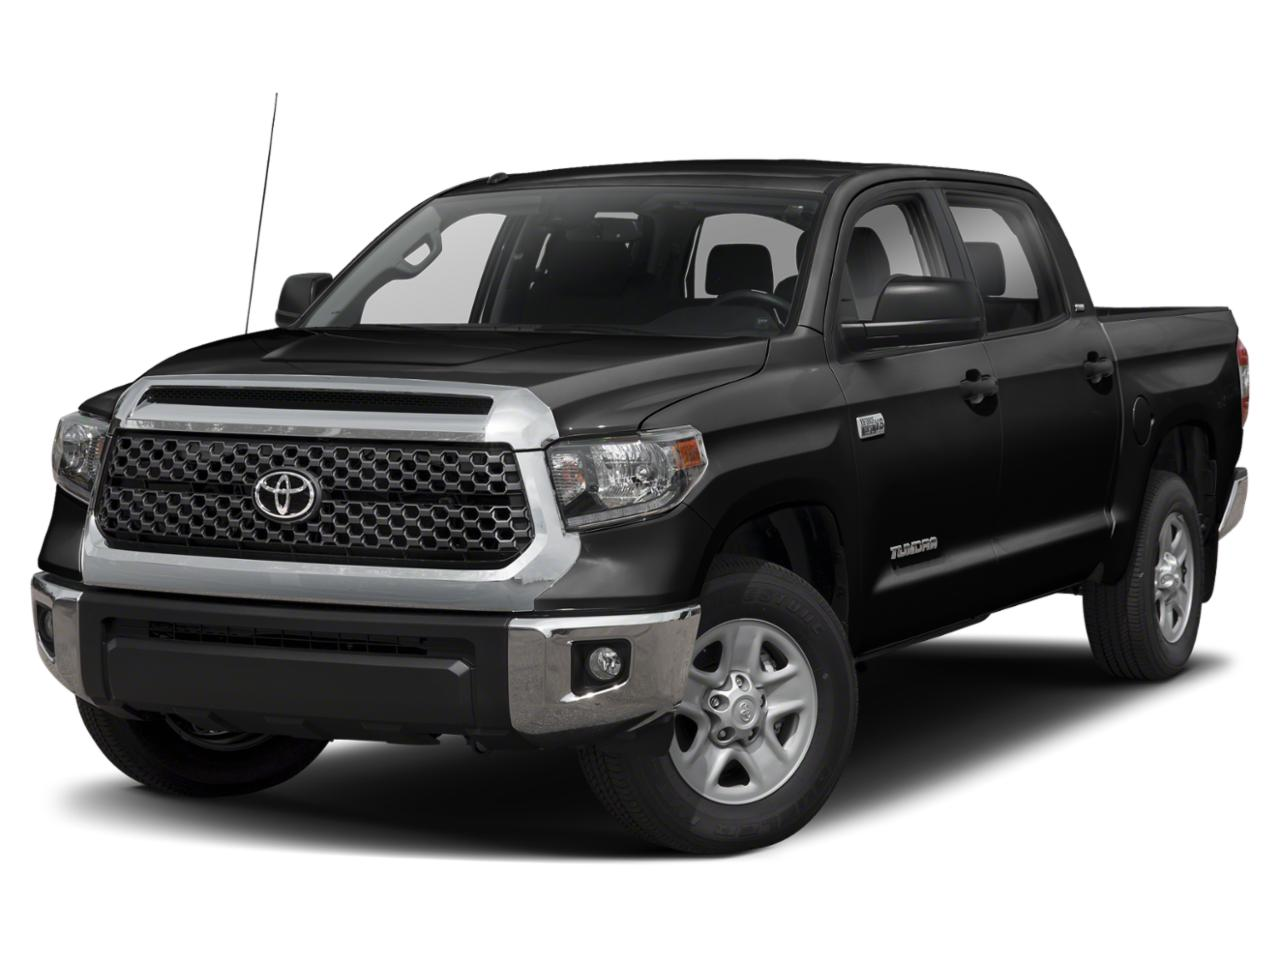 2019 Toyota Tundra 4WD Vehicle Photo in West Chester, PA 19382